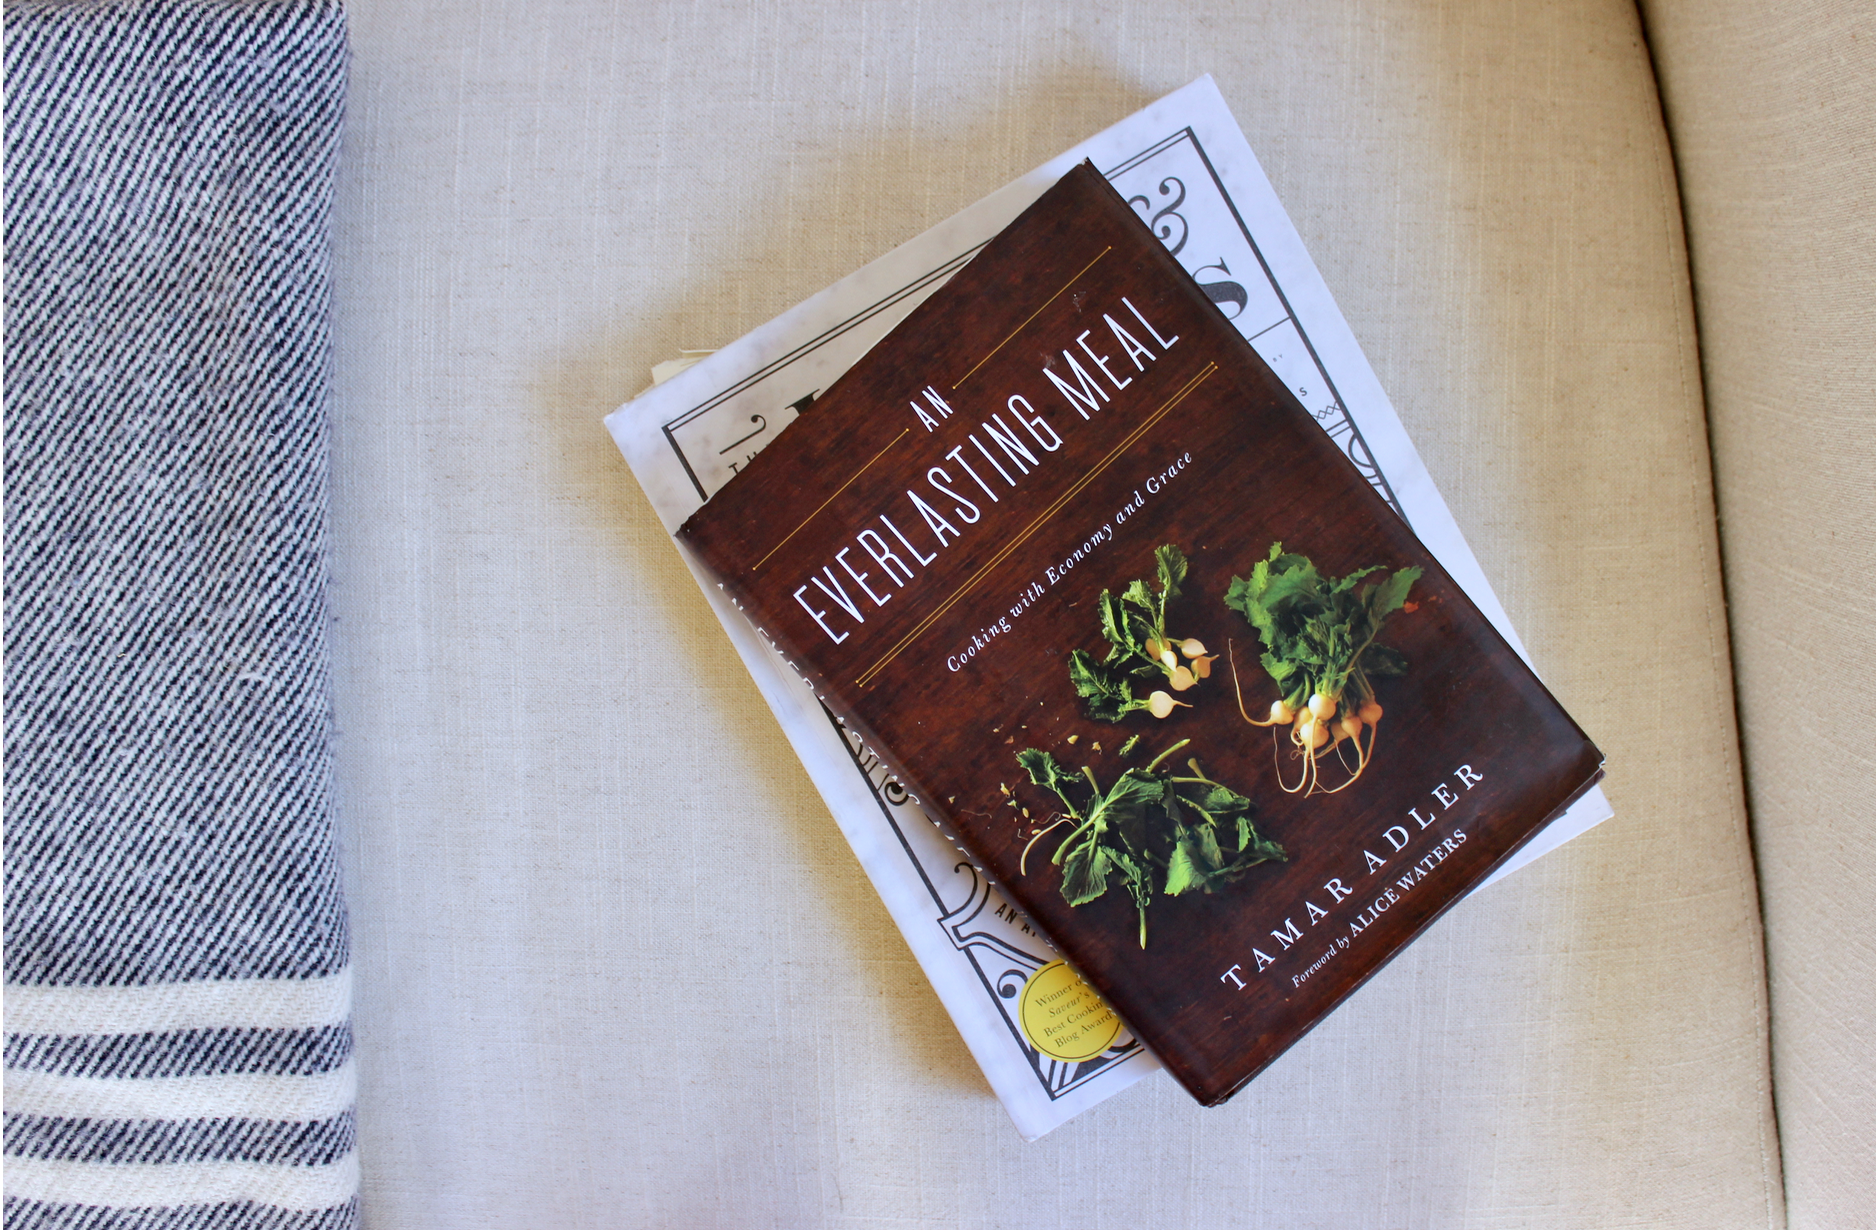 Favorite books for fighting food waste | Litterless